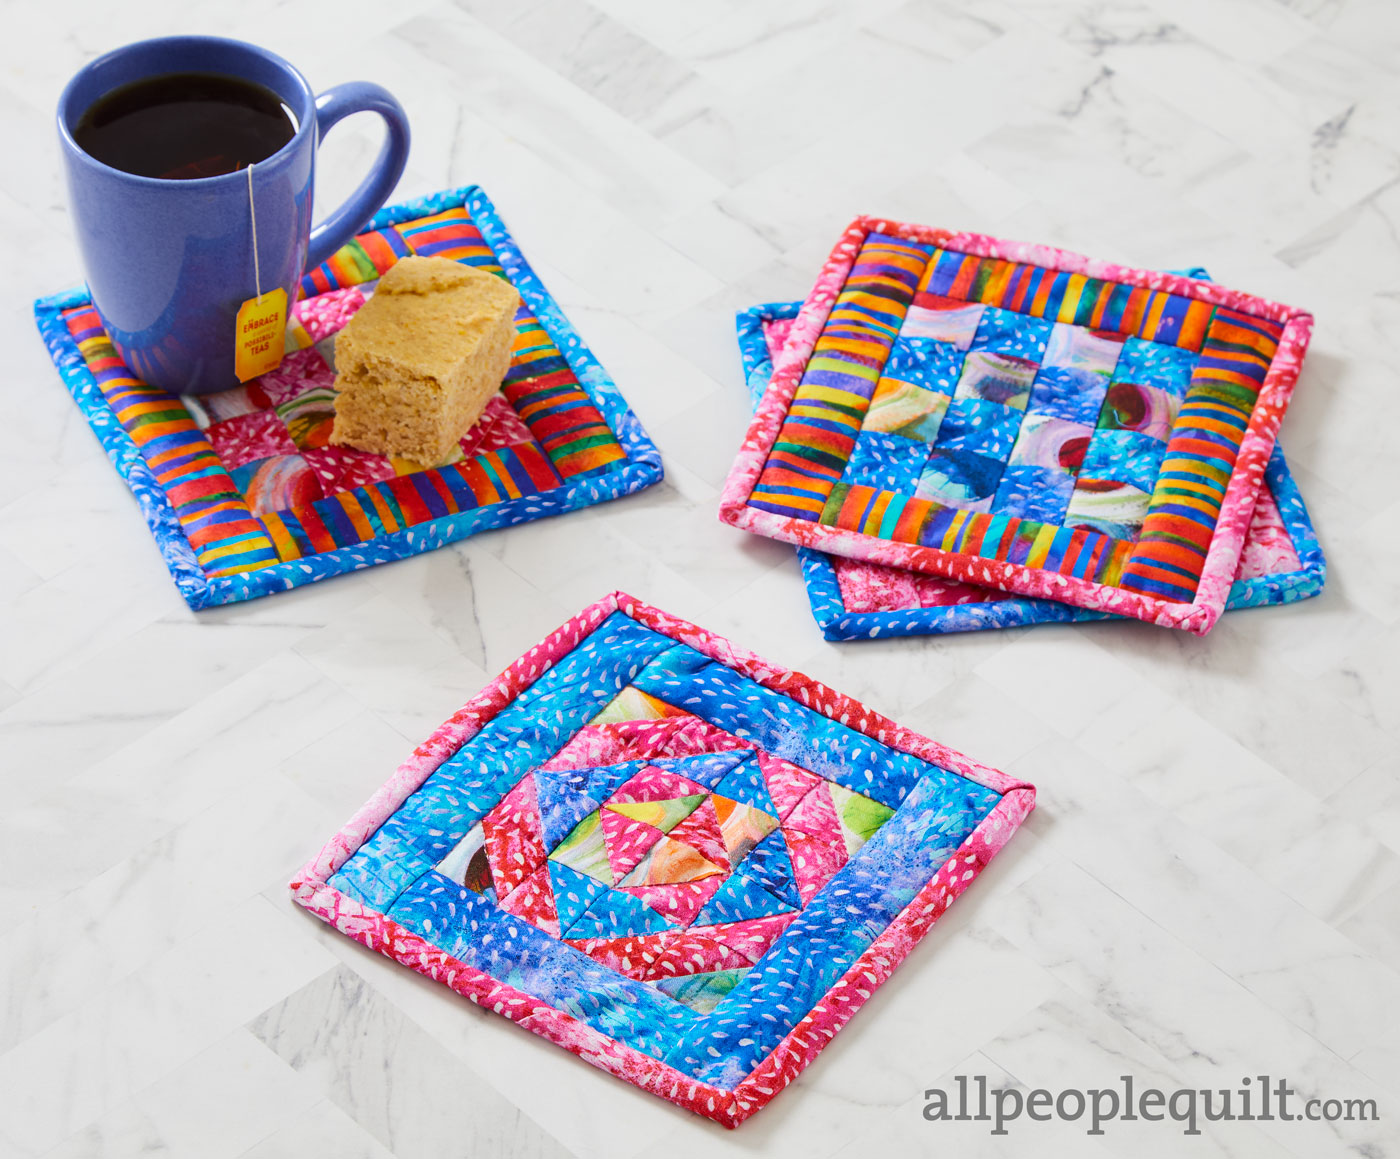 Colorful Mug Rugs Allpeoplequilt Com